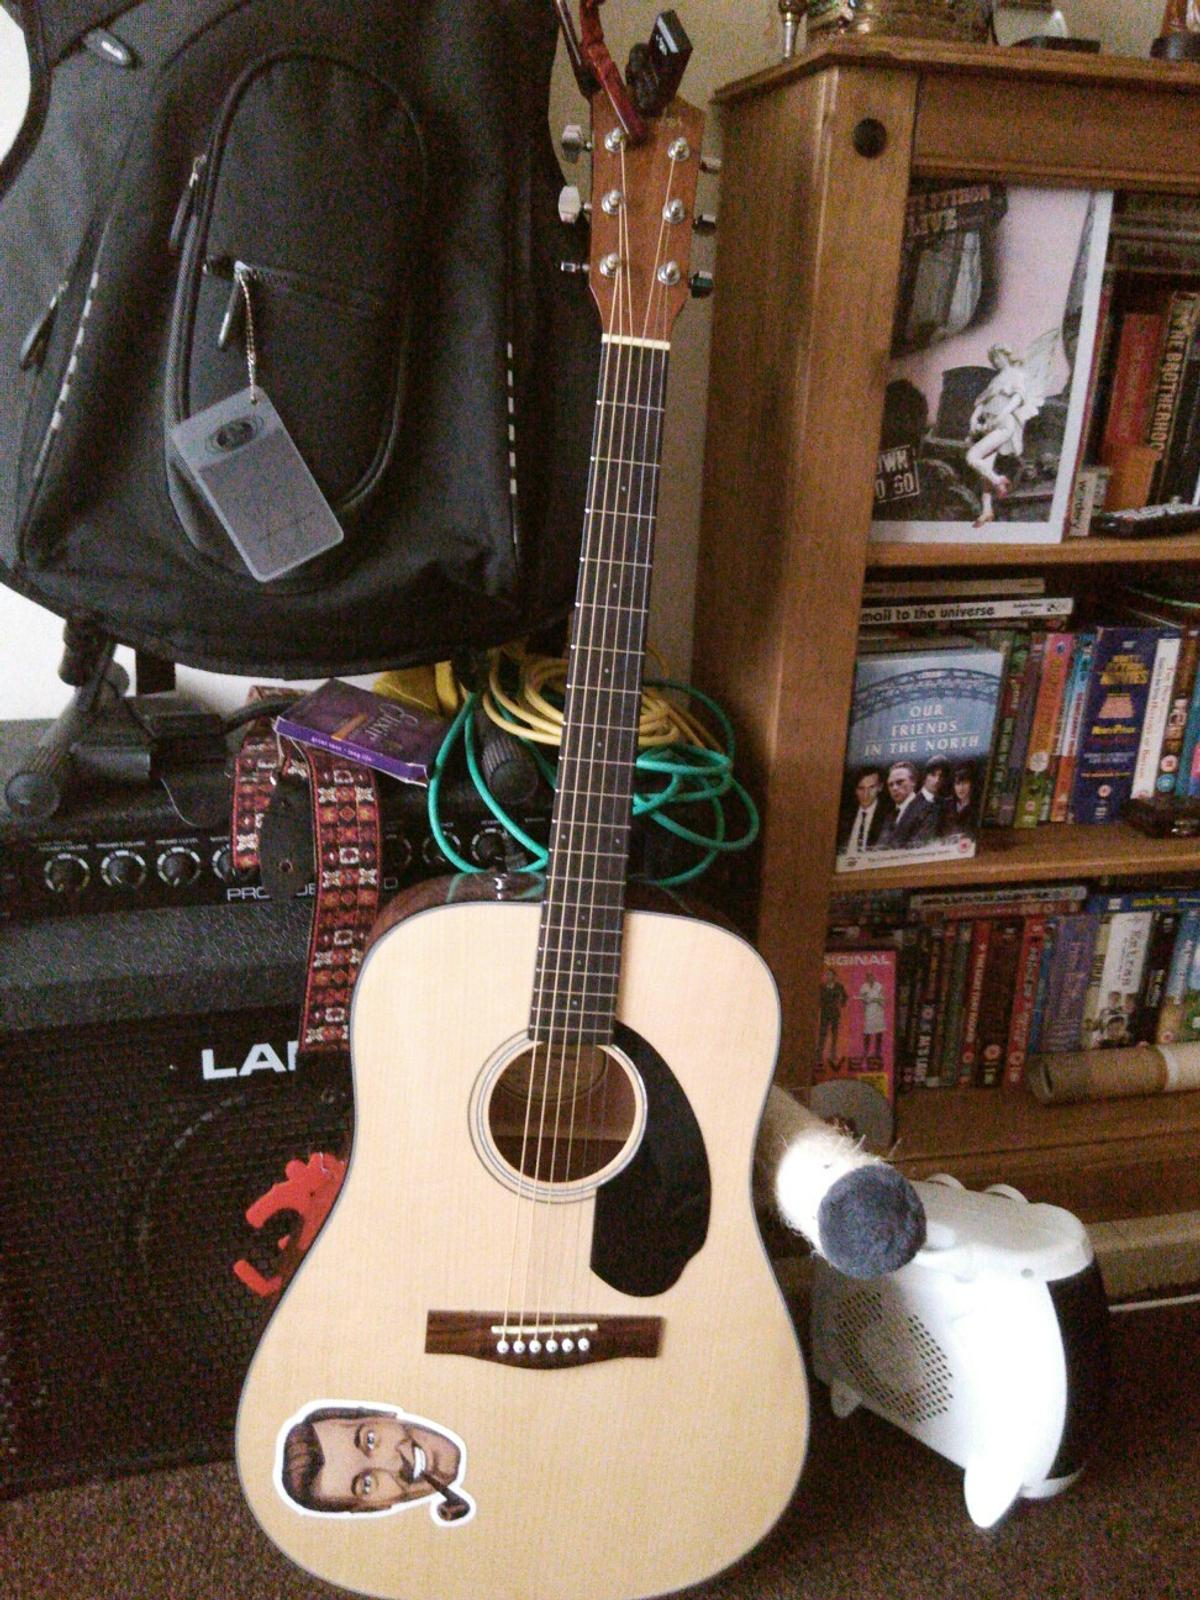 Great beginners guitar from Fender, nice action plays really well.